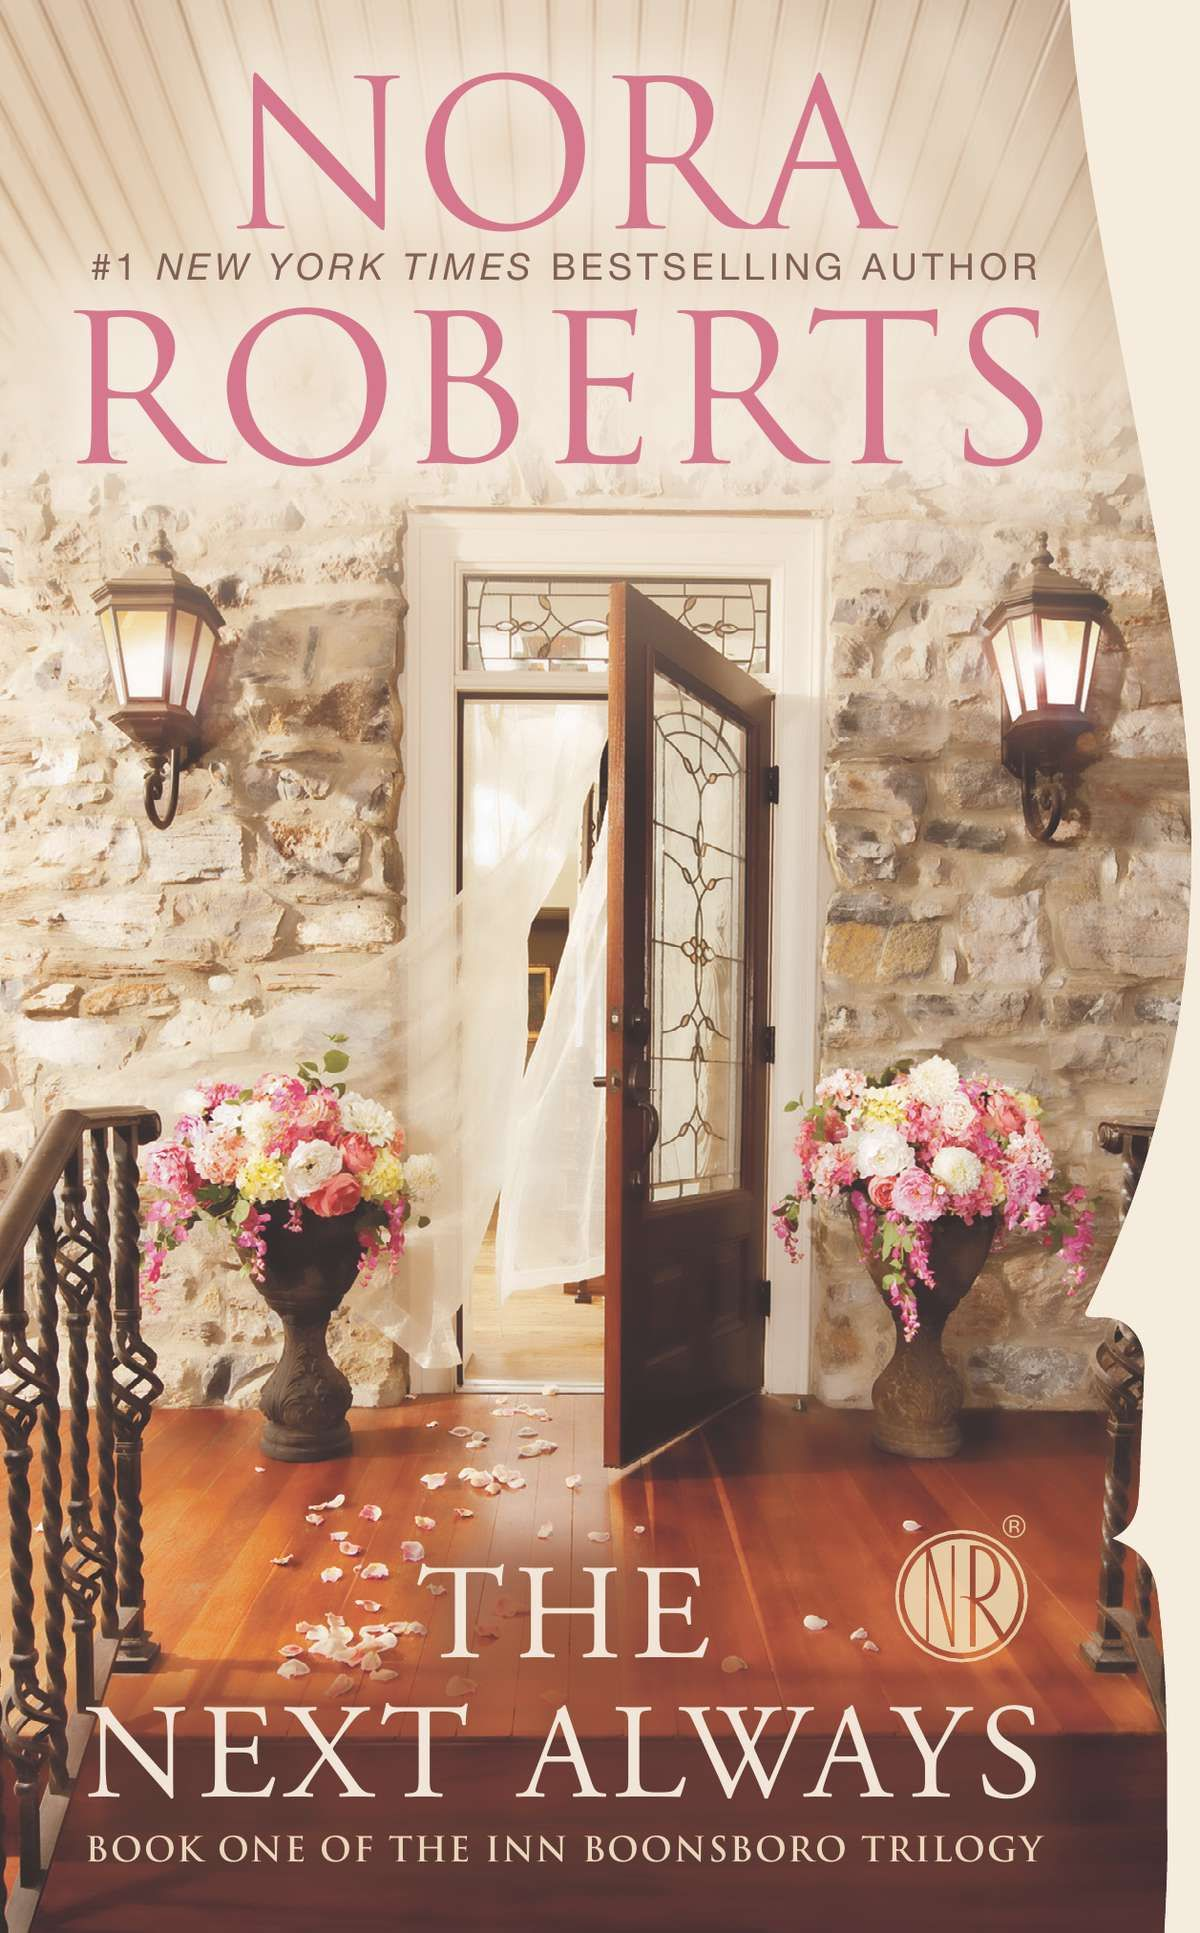 The Next Always by Nora Roberts 9780425243213